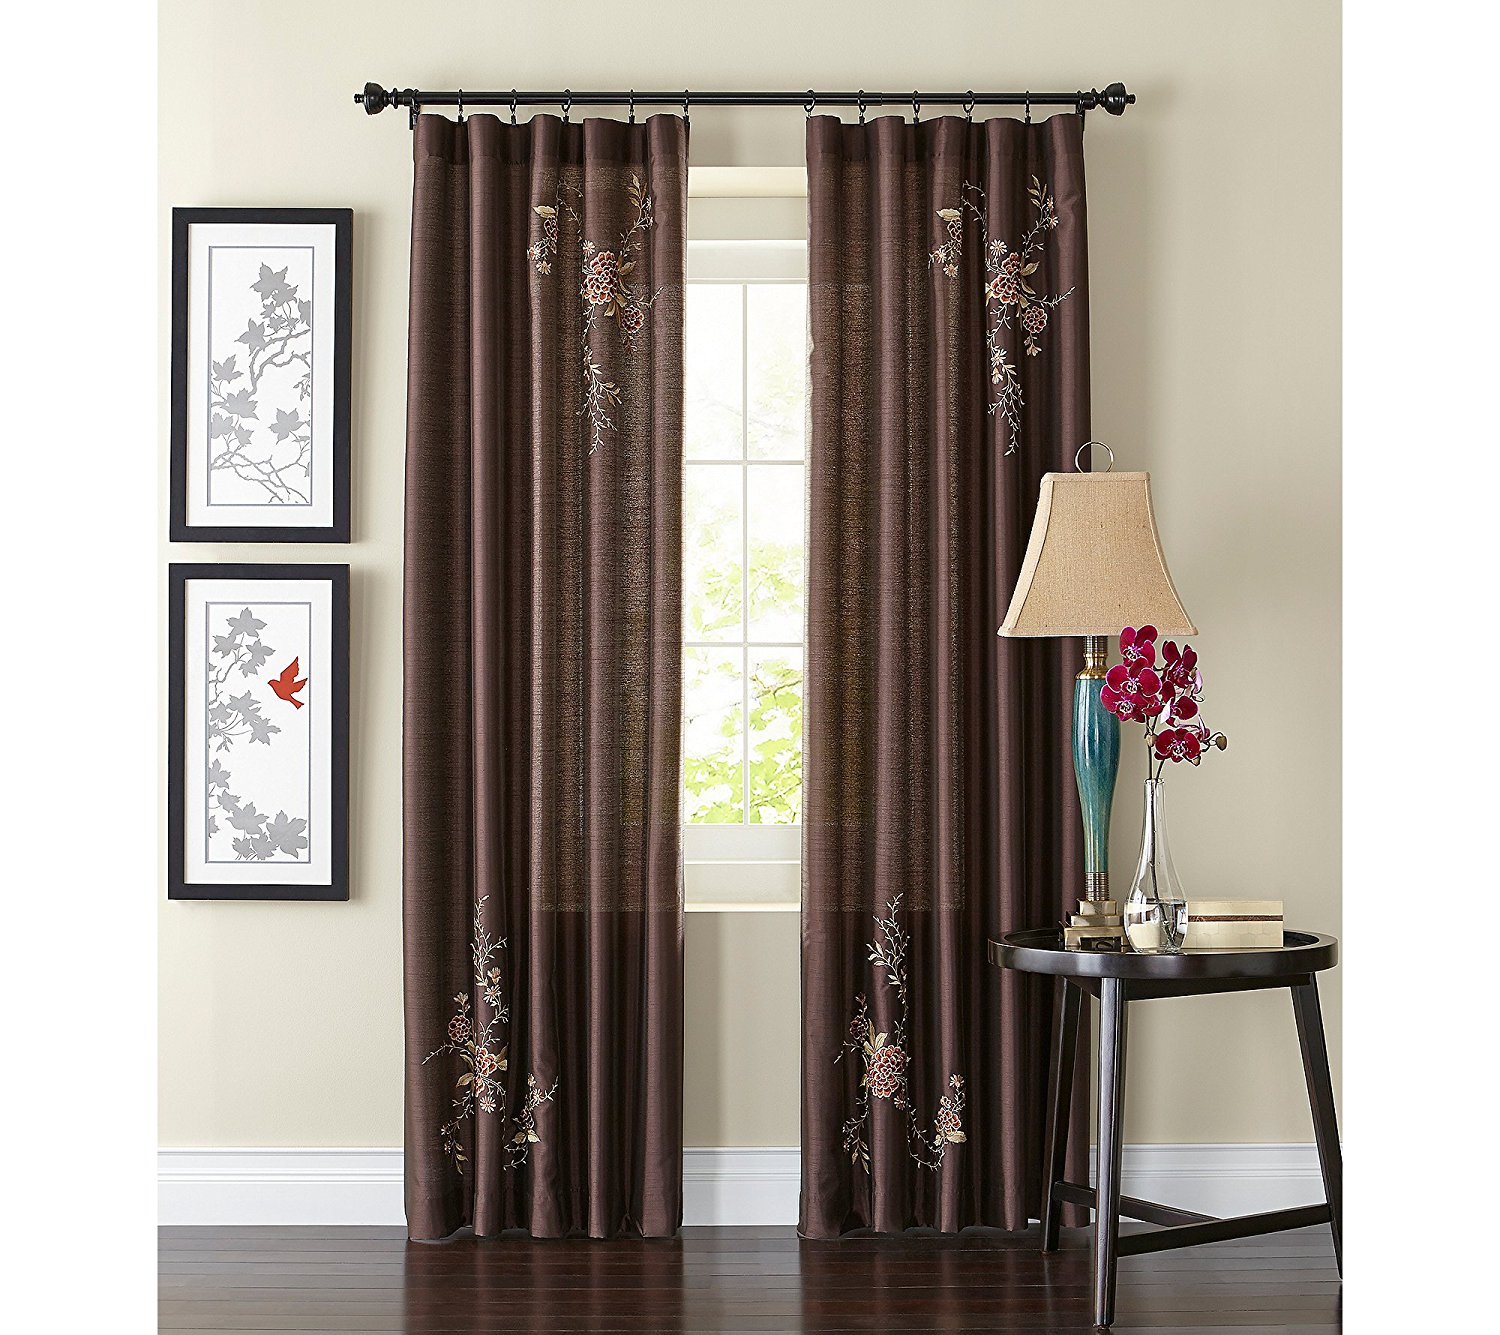 Alesandra Floral Embroidered Faux Silk Window Curtain Panel, Brown, 44 Inch X 84 Inch, Drapes Pinch Bordeaux 56inch Treatment Curtain Swag Orange. (View 10 of 20)